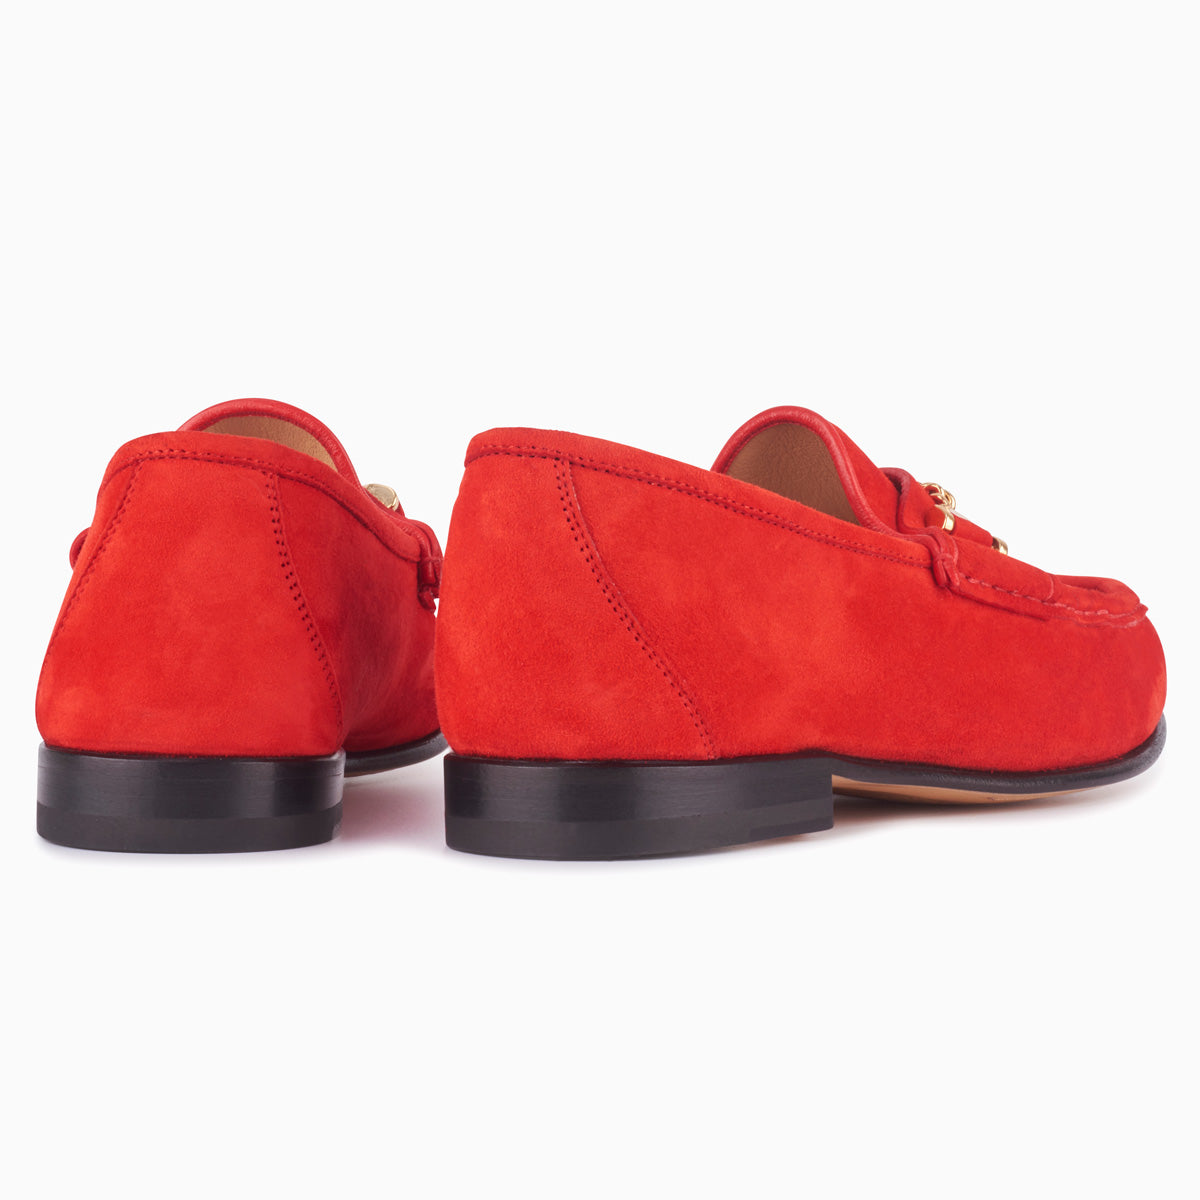 Hyusto Mick Moccasin Red kid suede back view